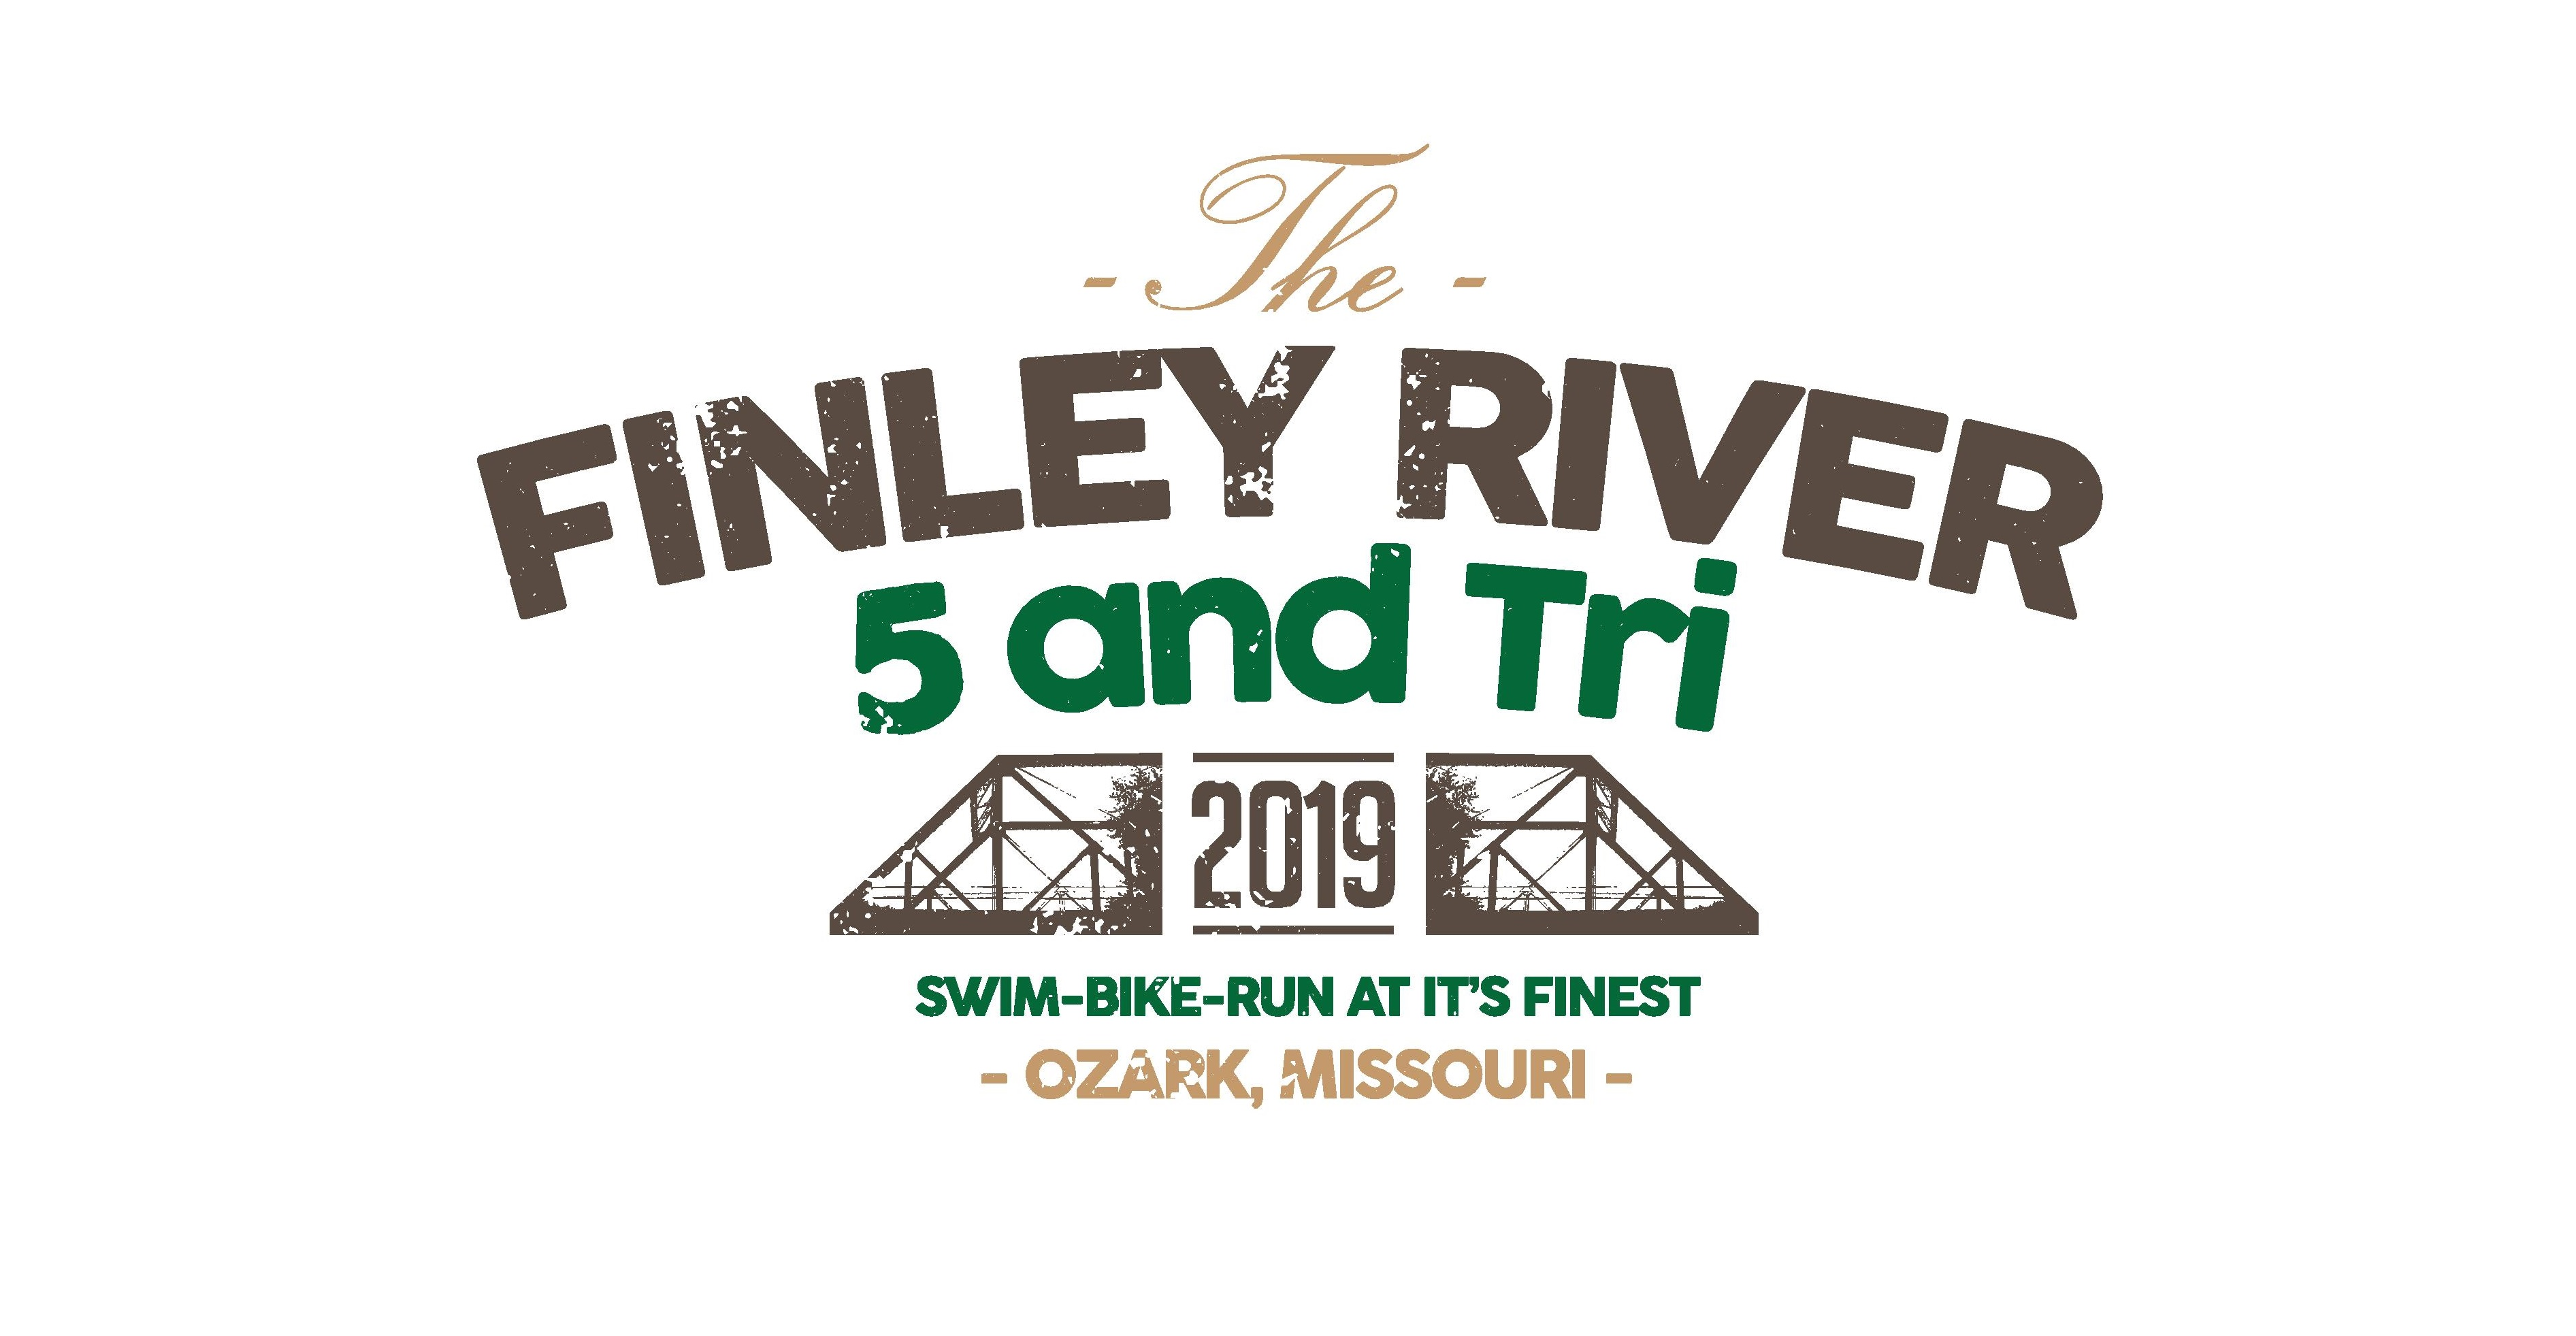 Finley River 5 and Tri 2020